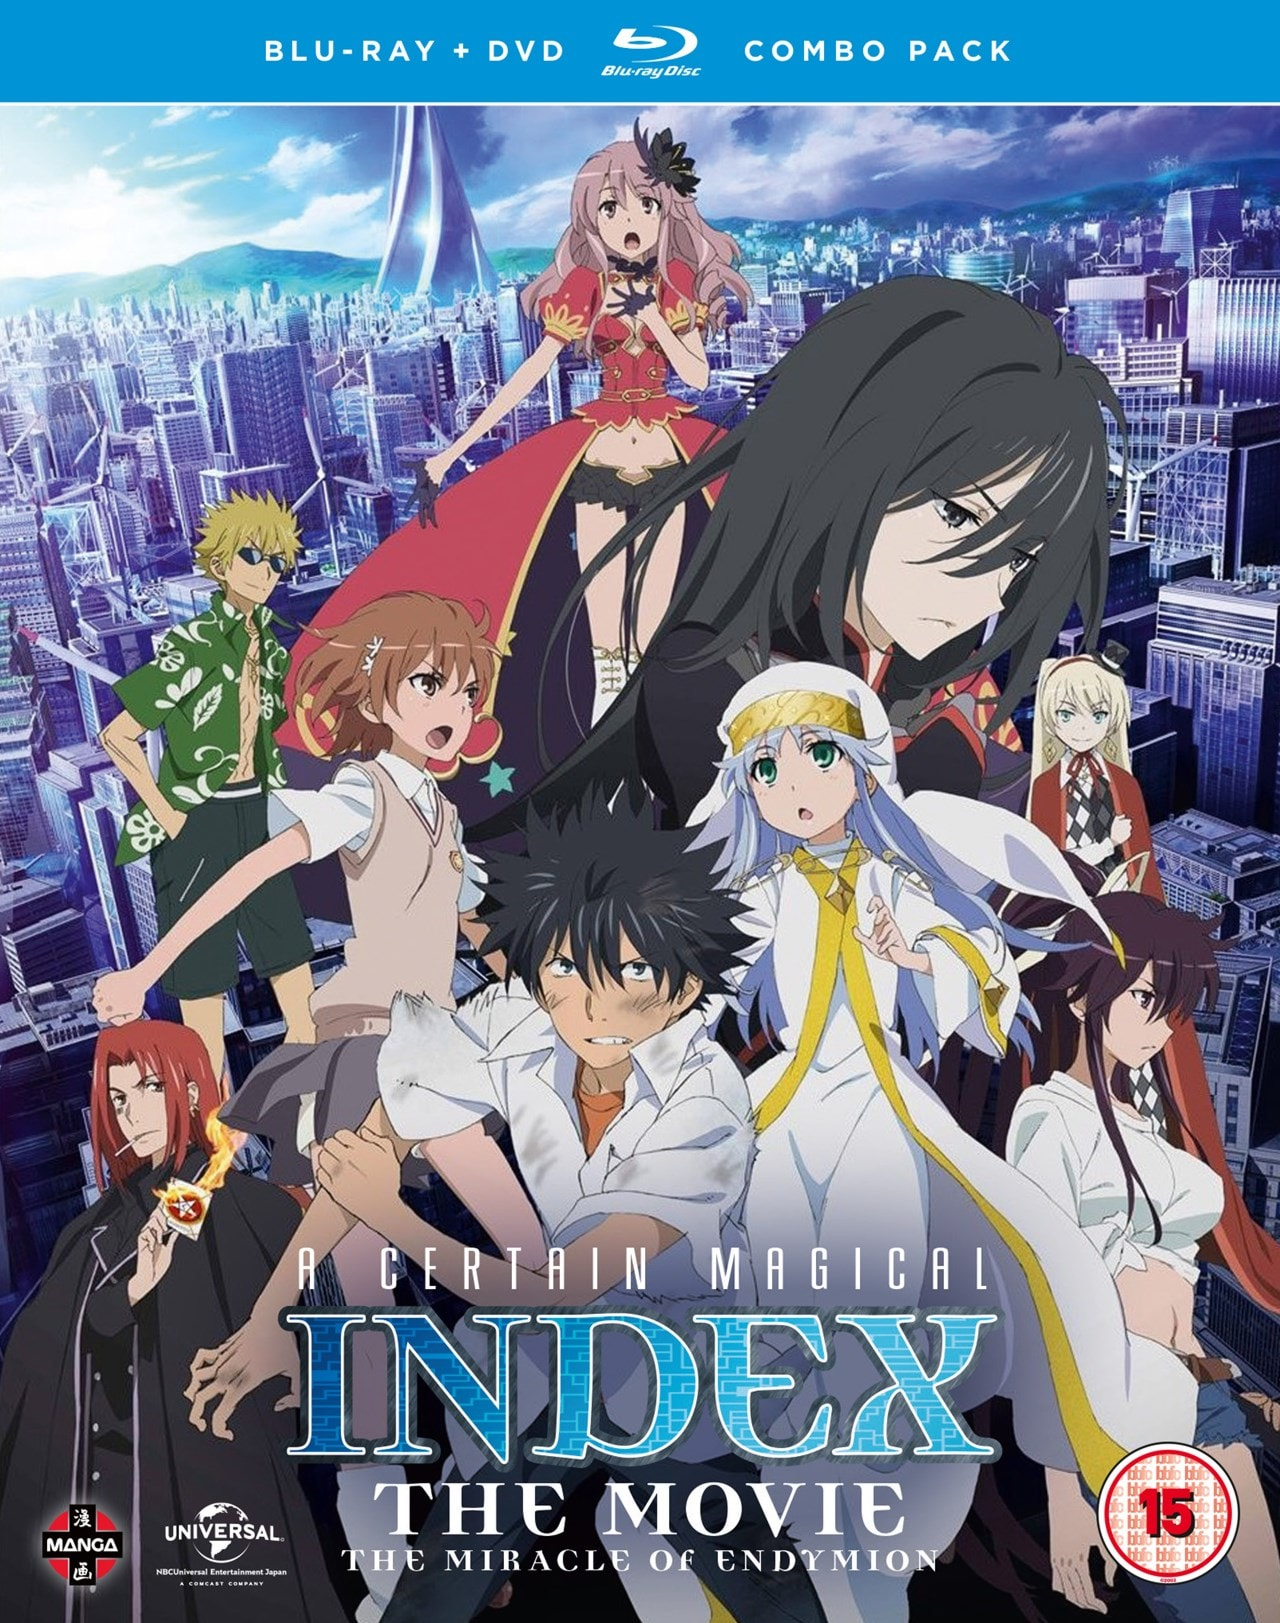 A Certain Magical Index: The Movie - The Miracle of Endymion - 1